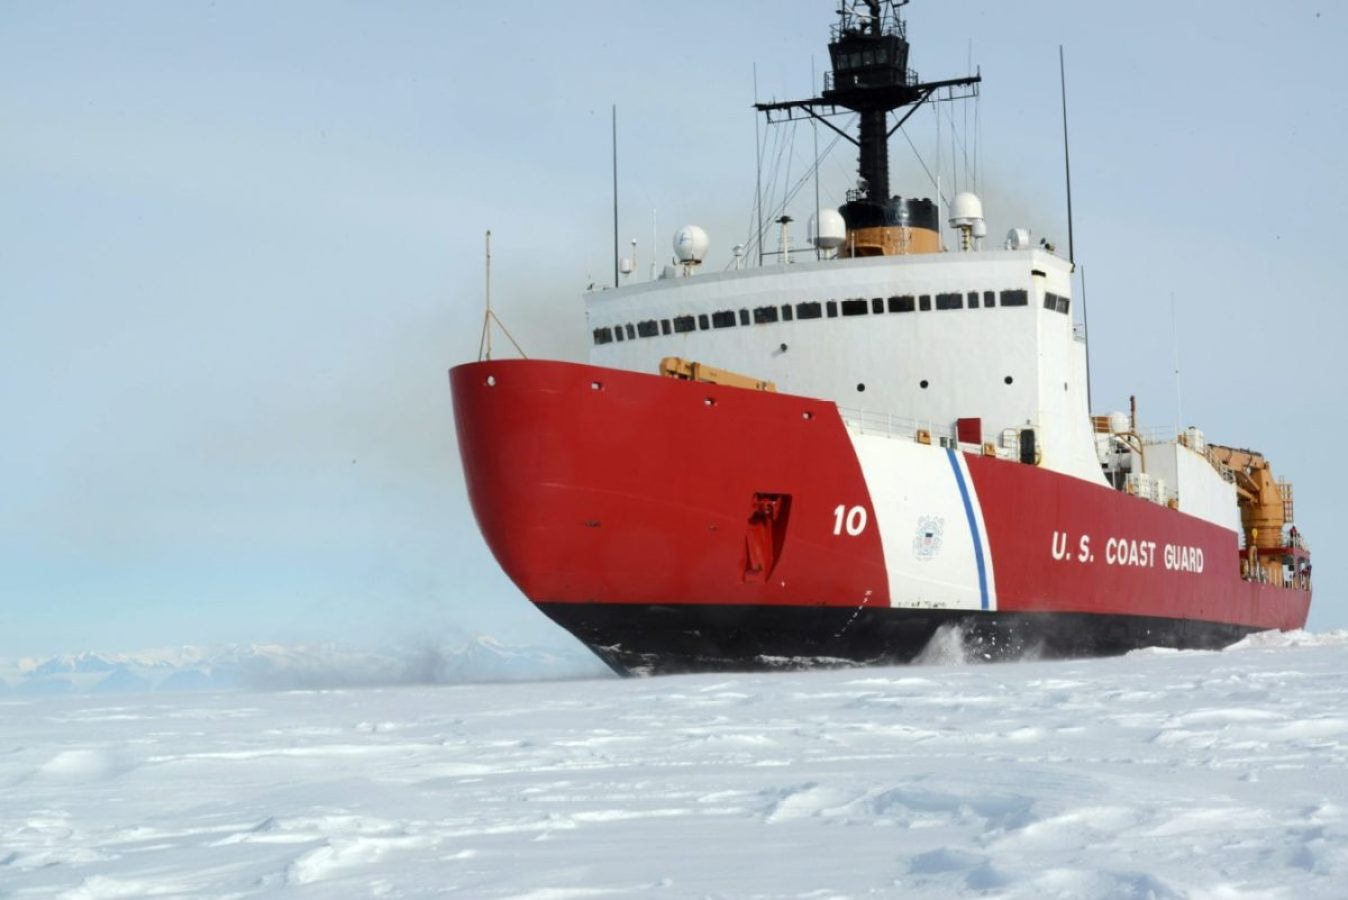 The Coast Guard Cutter Polar Star, with 75,000 horsepower and its 13,500-ton weight, is guided by its crew to break through Antarctic ice en route to the National Science Foundation's McMurdo Station, Jan 15, 2017. The ship which was designed more than 40 years ago, remains the world's most powerful non-nuclear icebreaker.